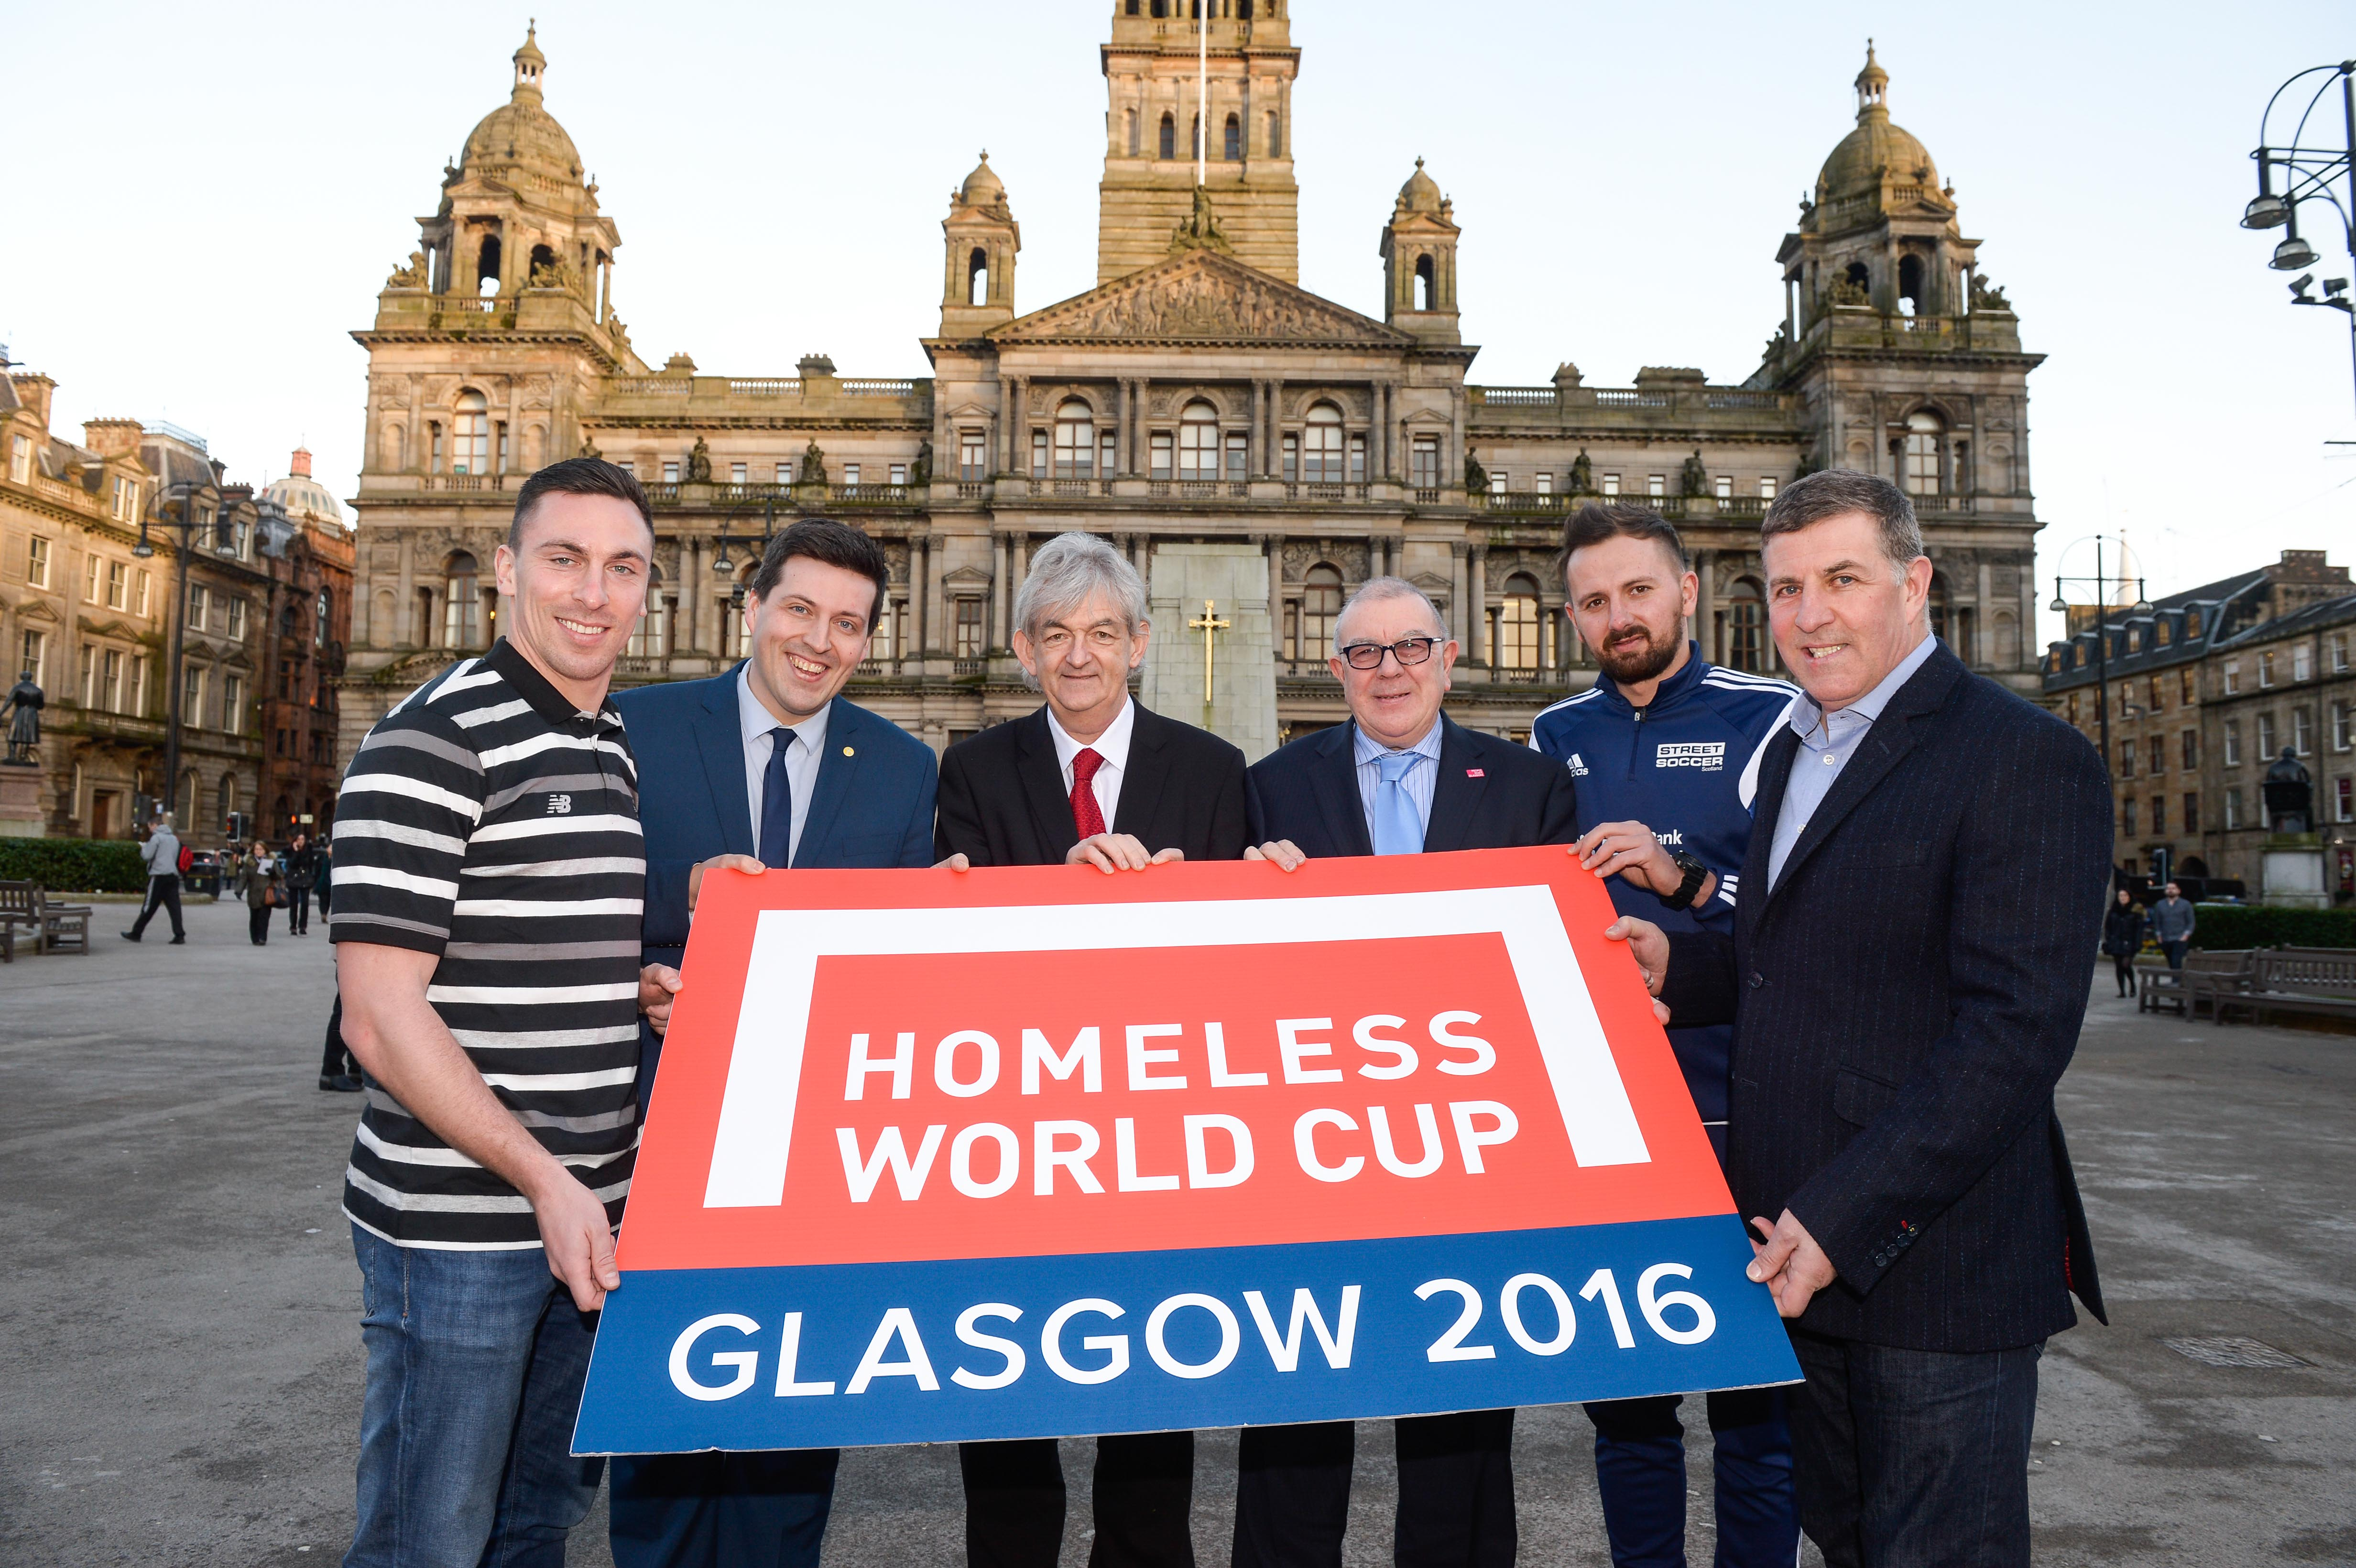 Homeless World Cup tournament gets under way in Glasgow